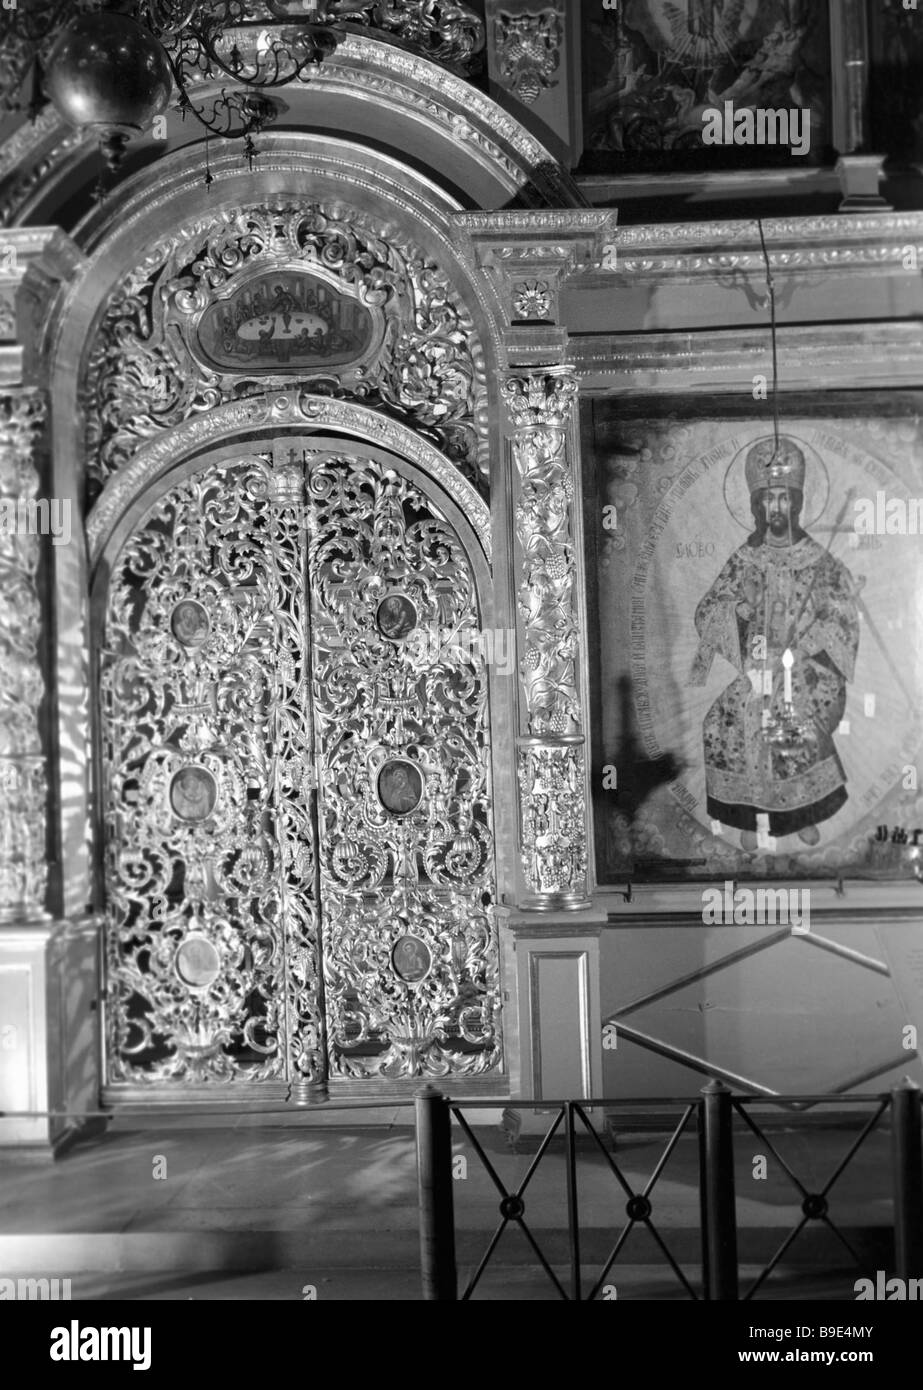 A piece of the iconostasis of the Archangel Cathedral the Tsar Gates - Stock Image